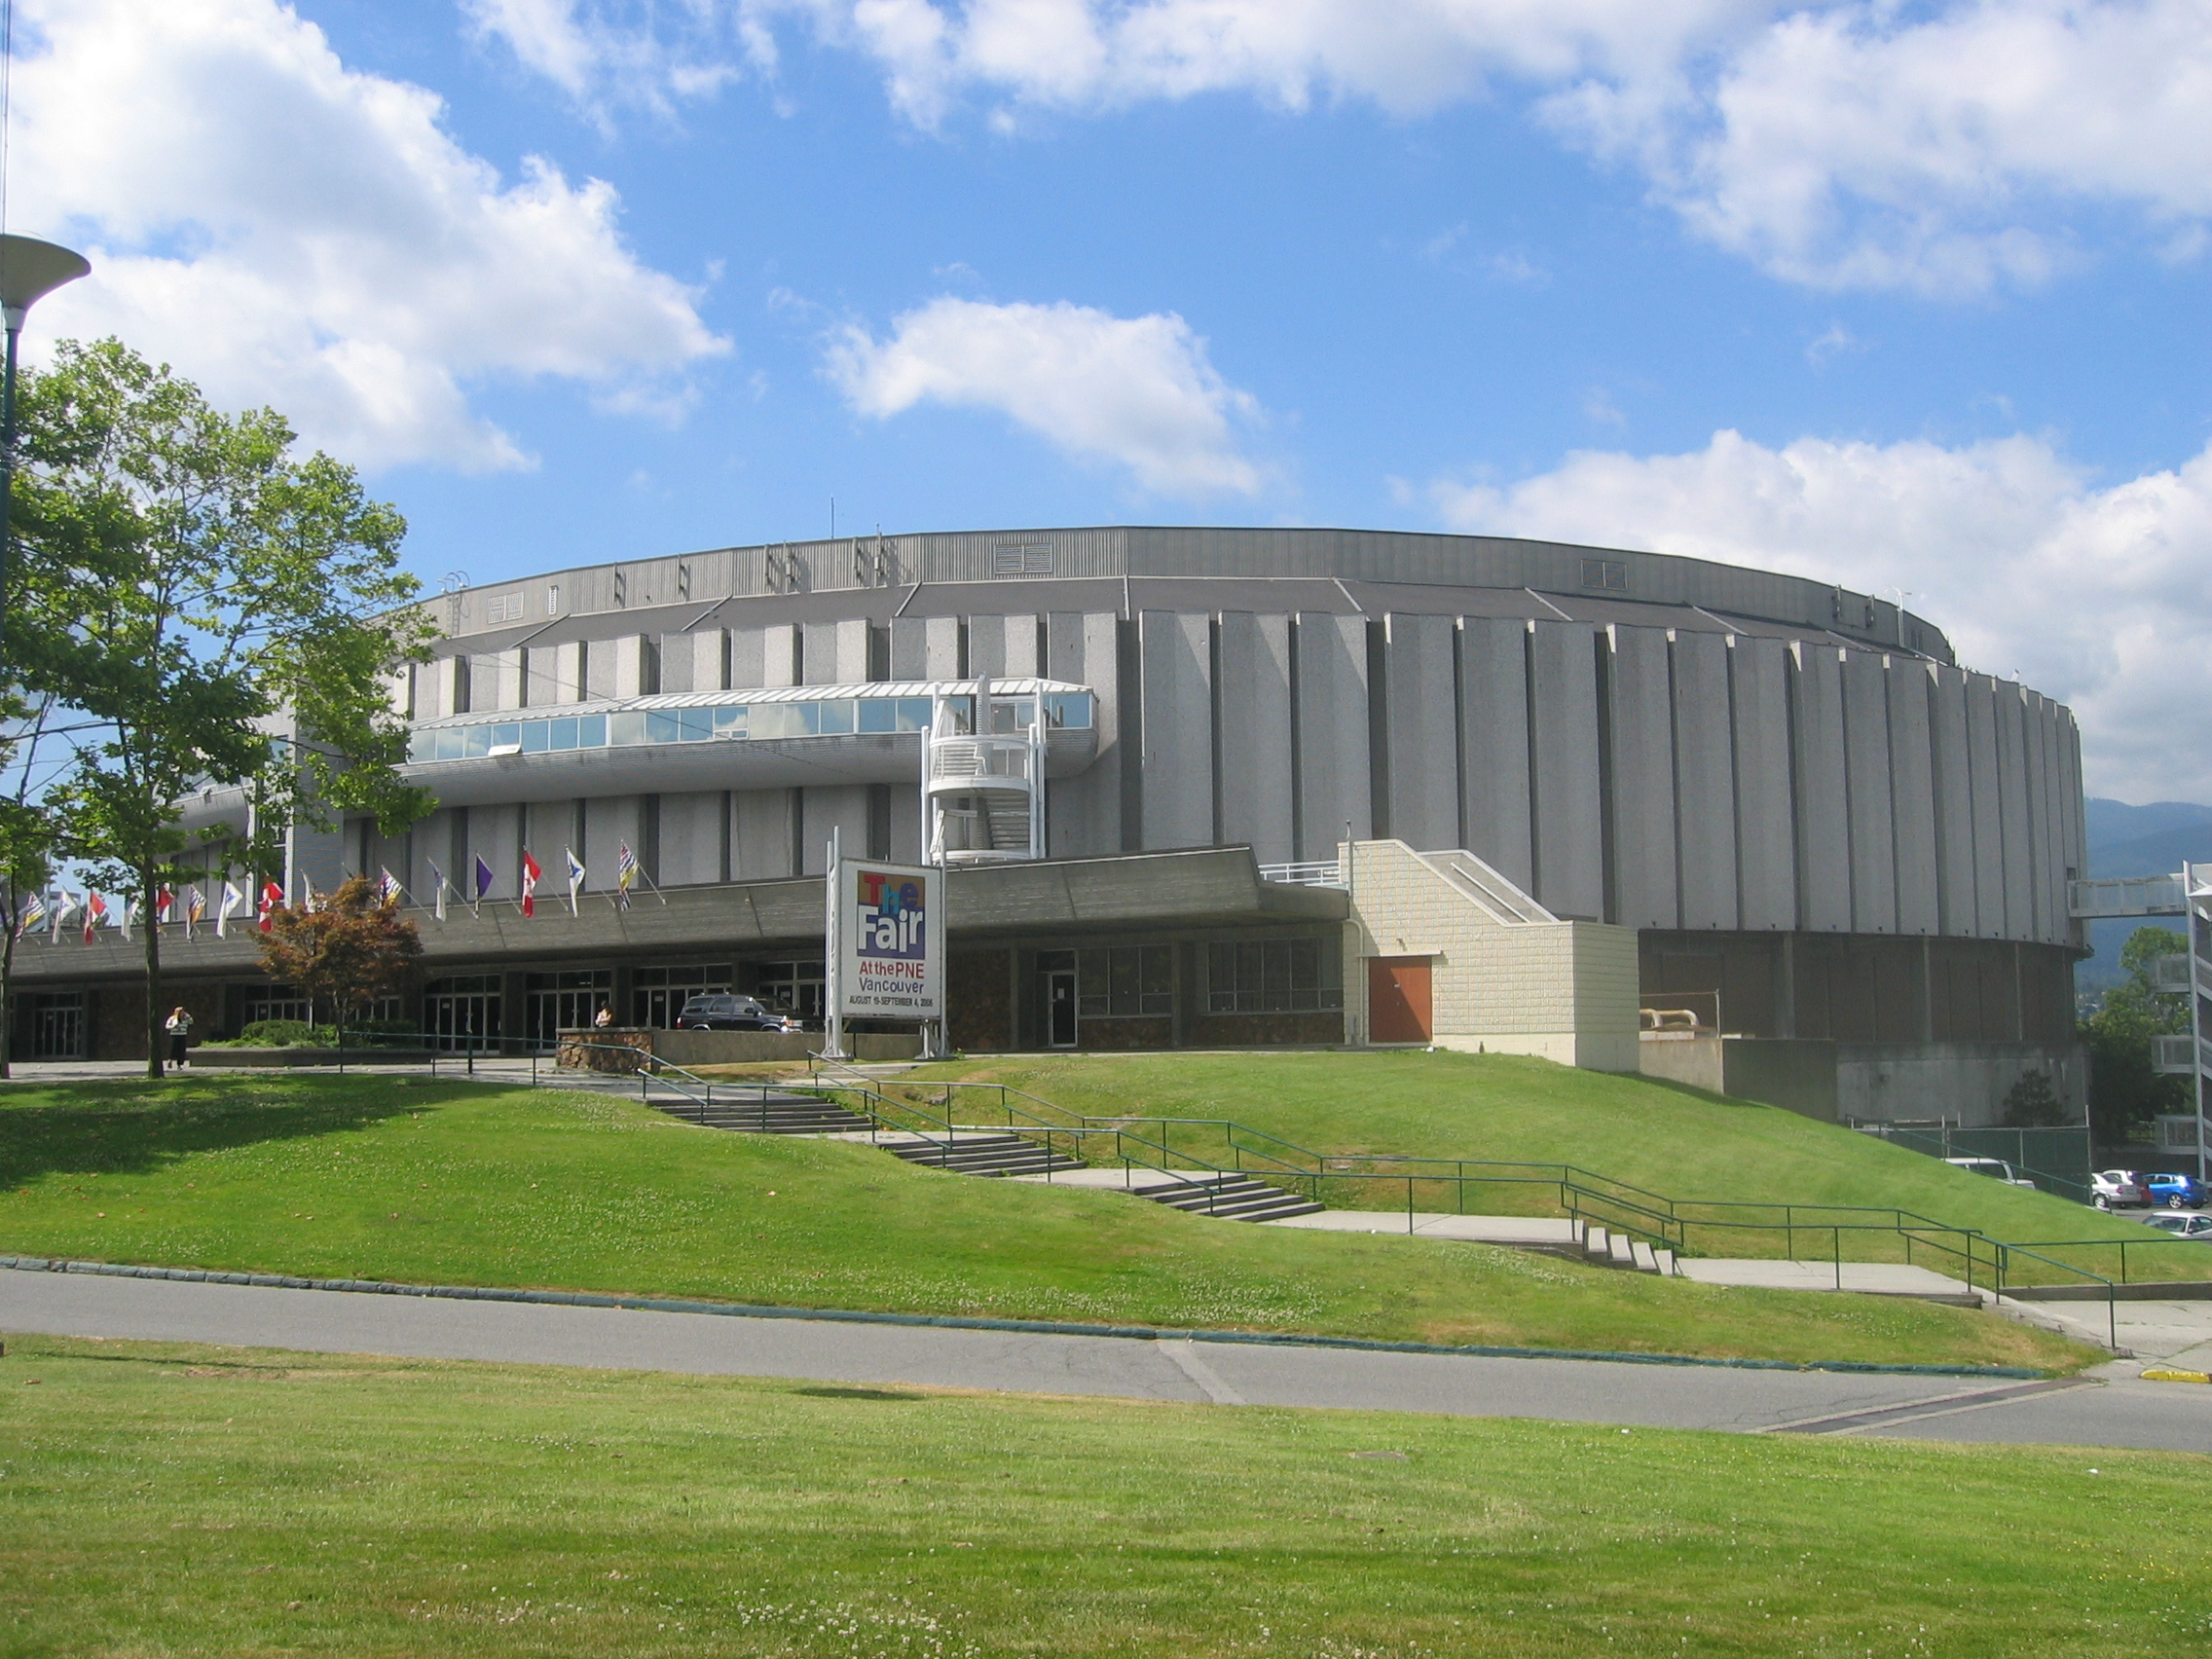 http://de.academic.ru/pictures/dewiki/80/Pacificcoliseum.jpg